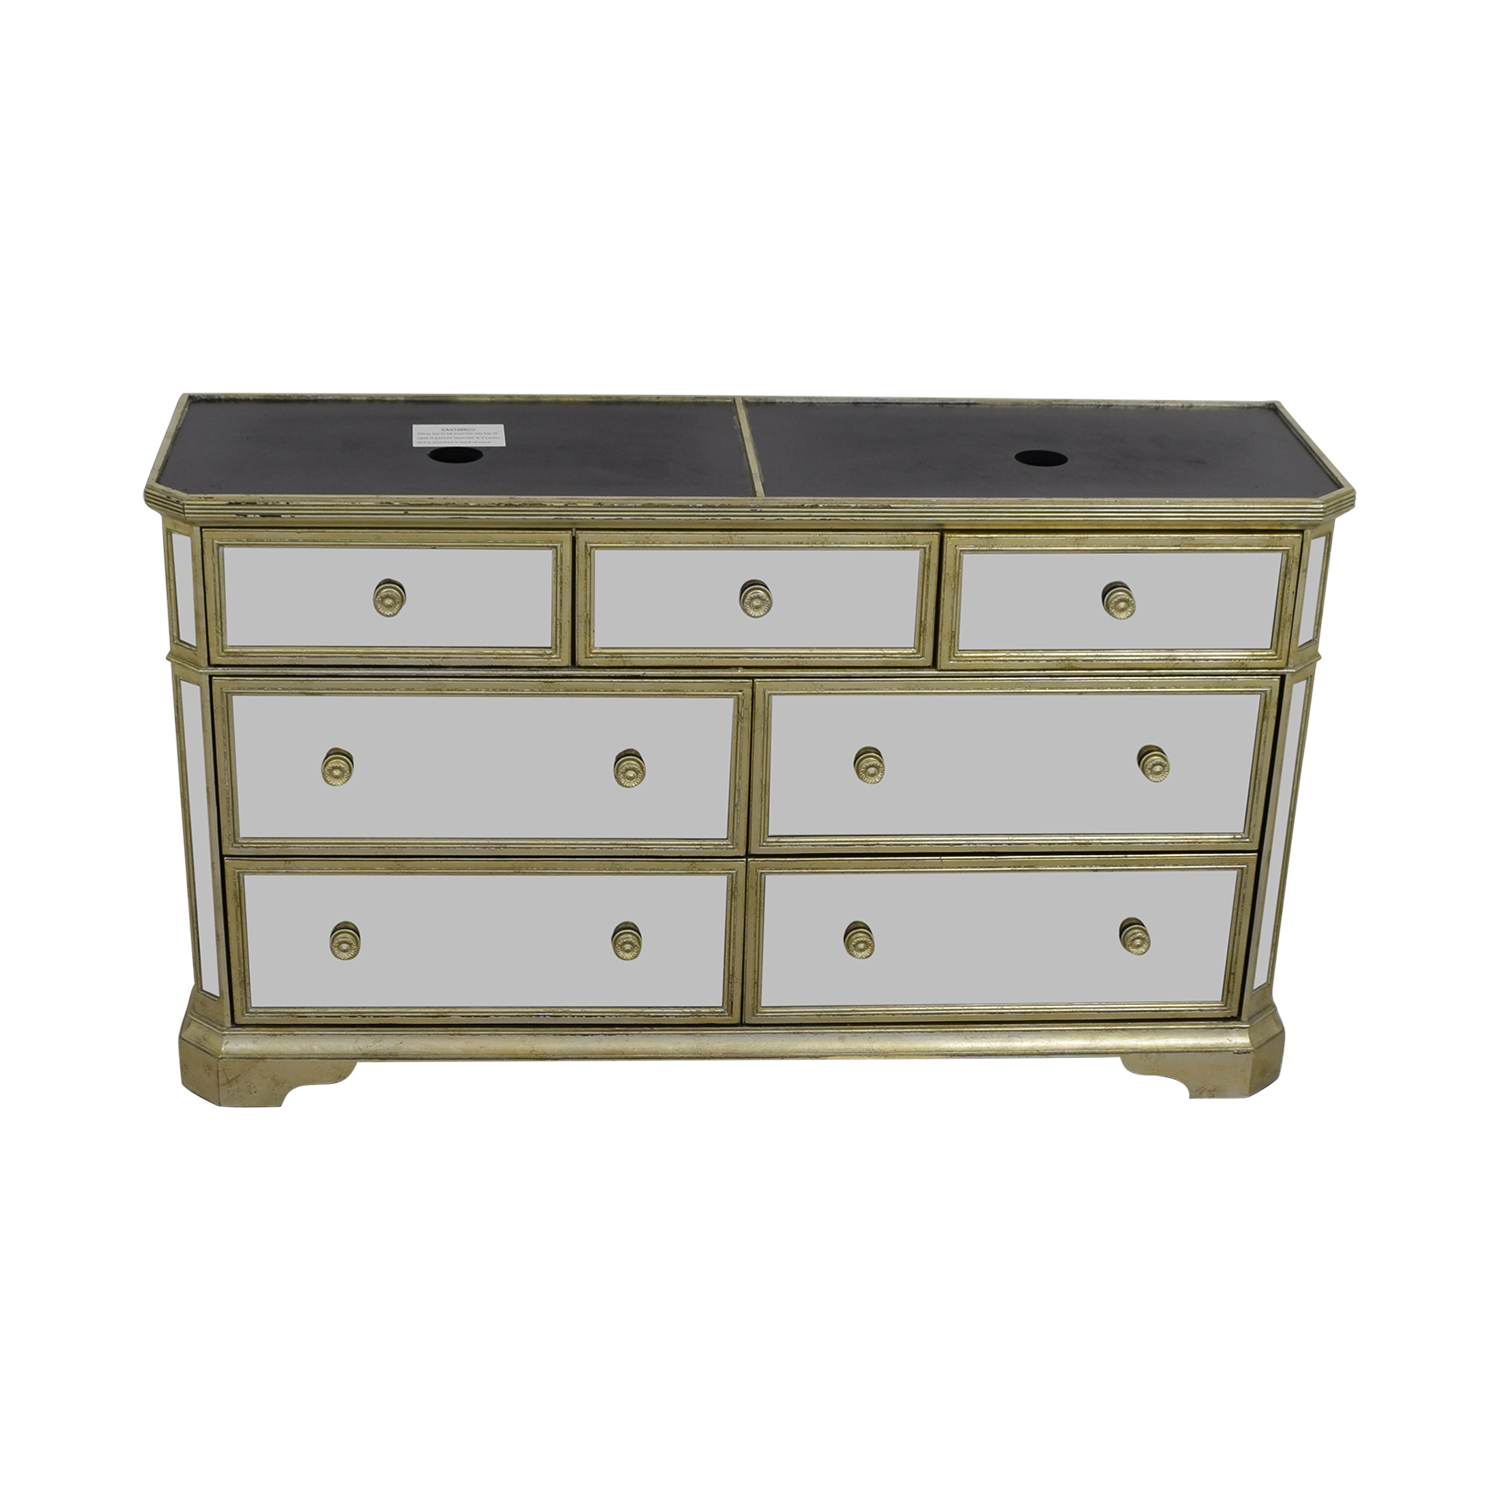 Marais Marais Seven-Drawer Mirrored Dresser gray\mirrored